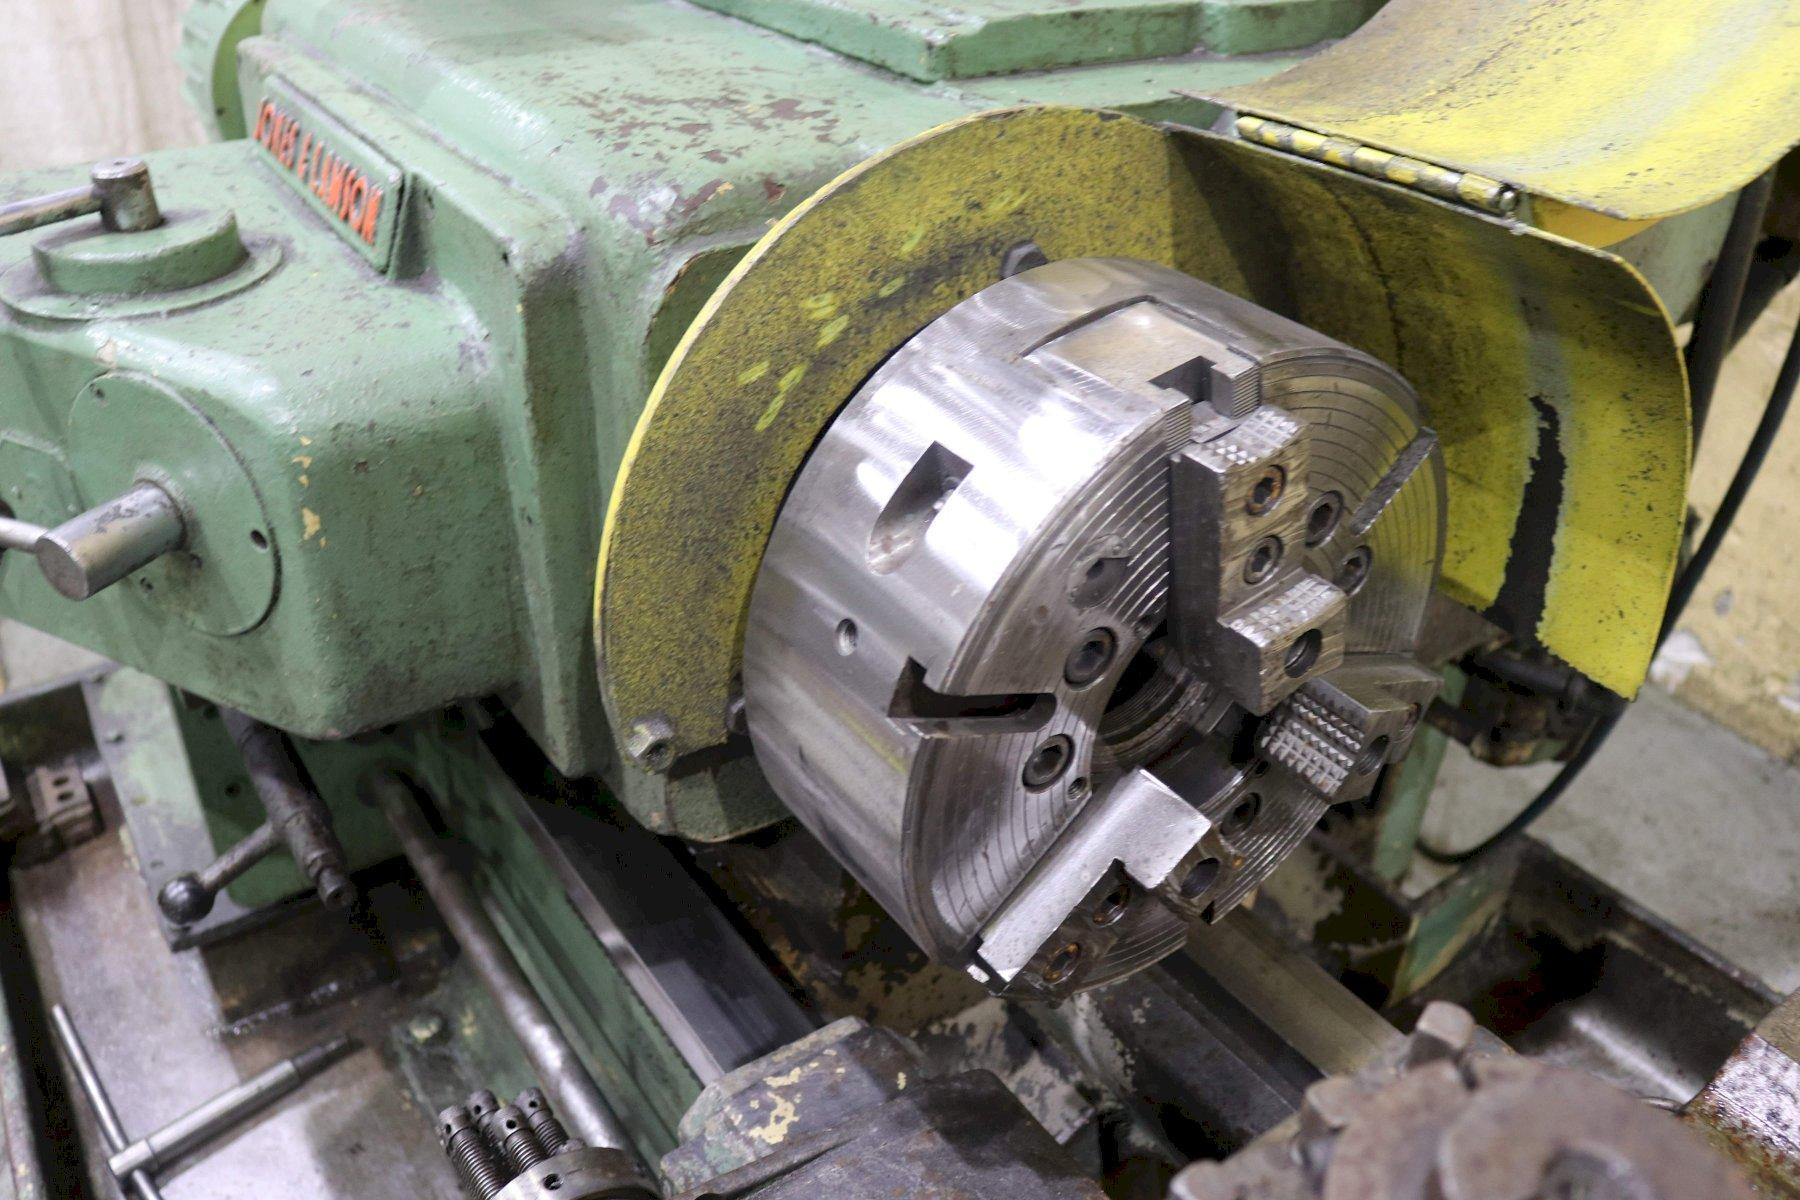 JONES & LAMSON MODEL #5-3 TURRET LATHE: STOCK #72880